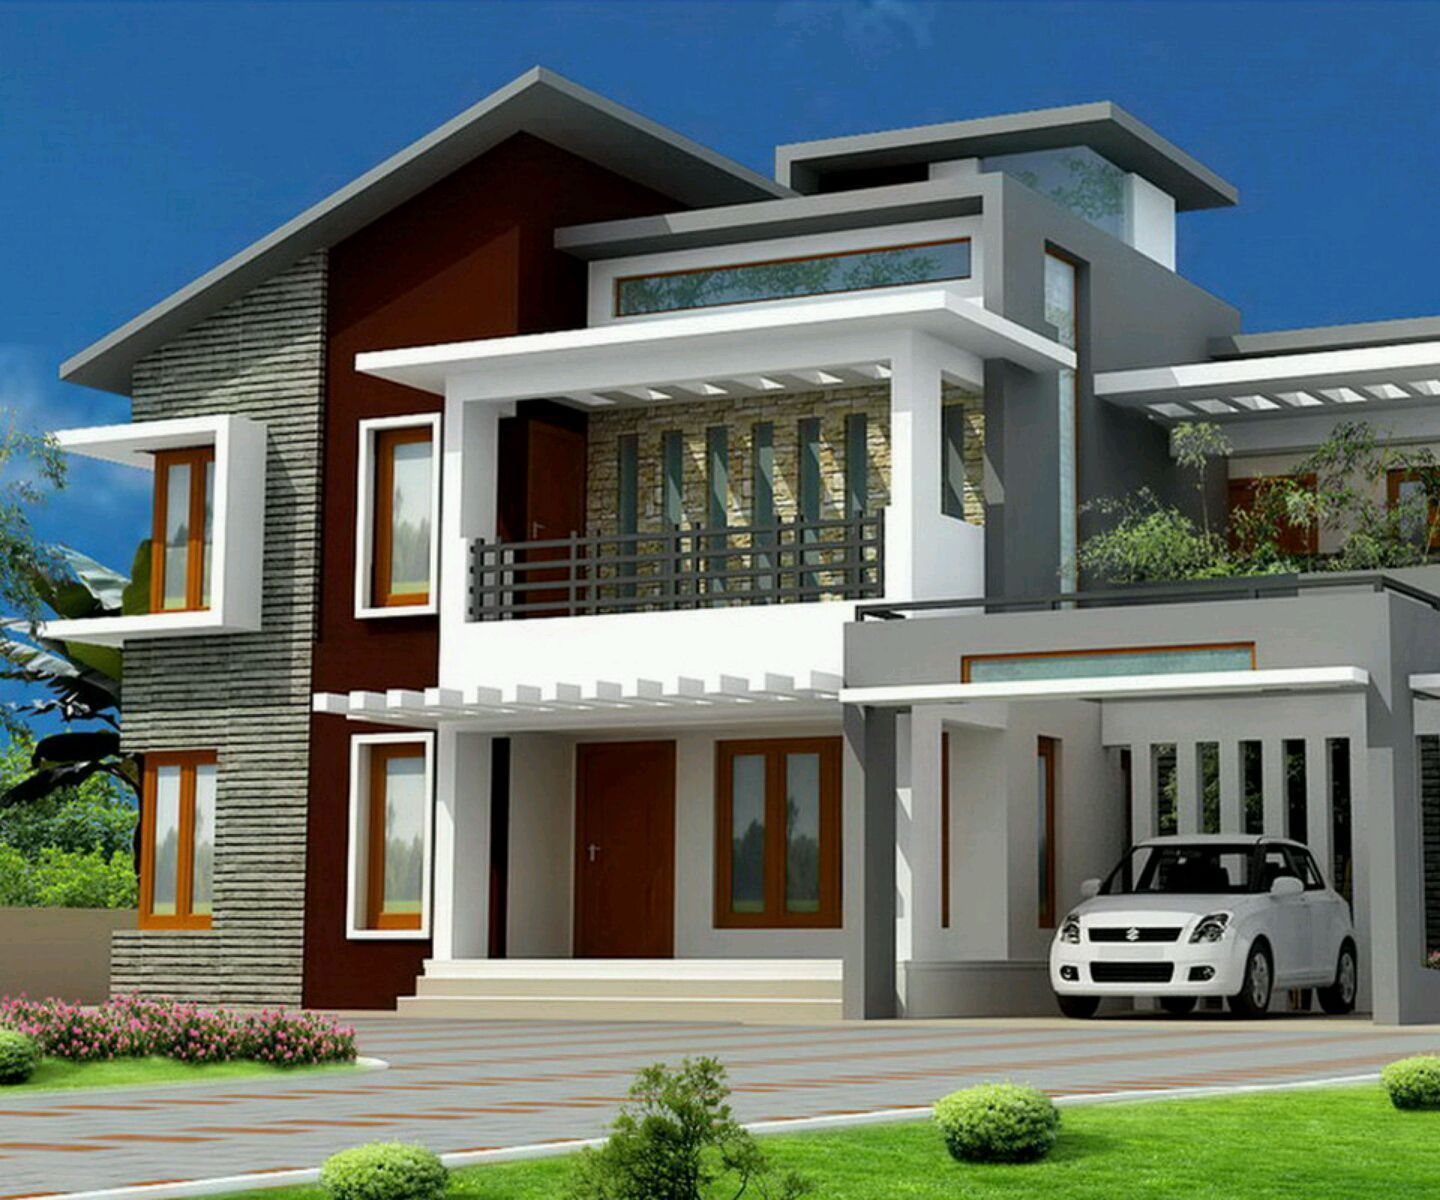 House Design Exterior stunning exterior house design in various colors of white also